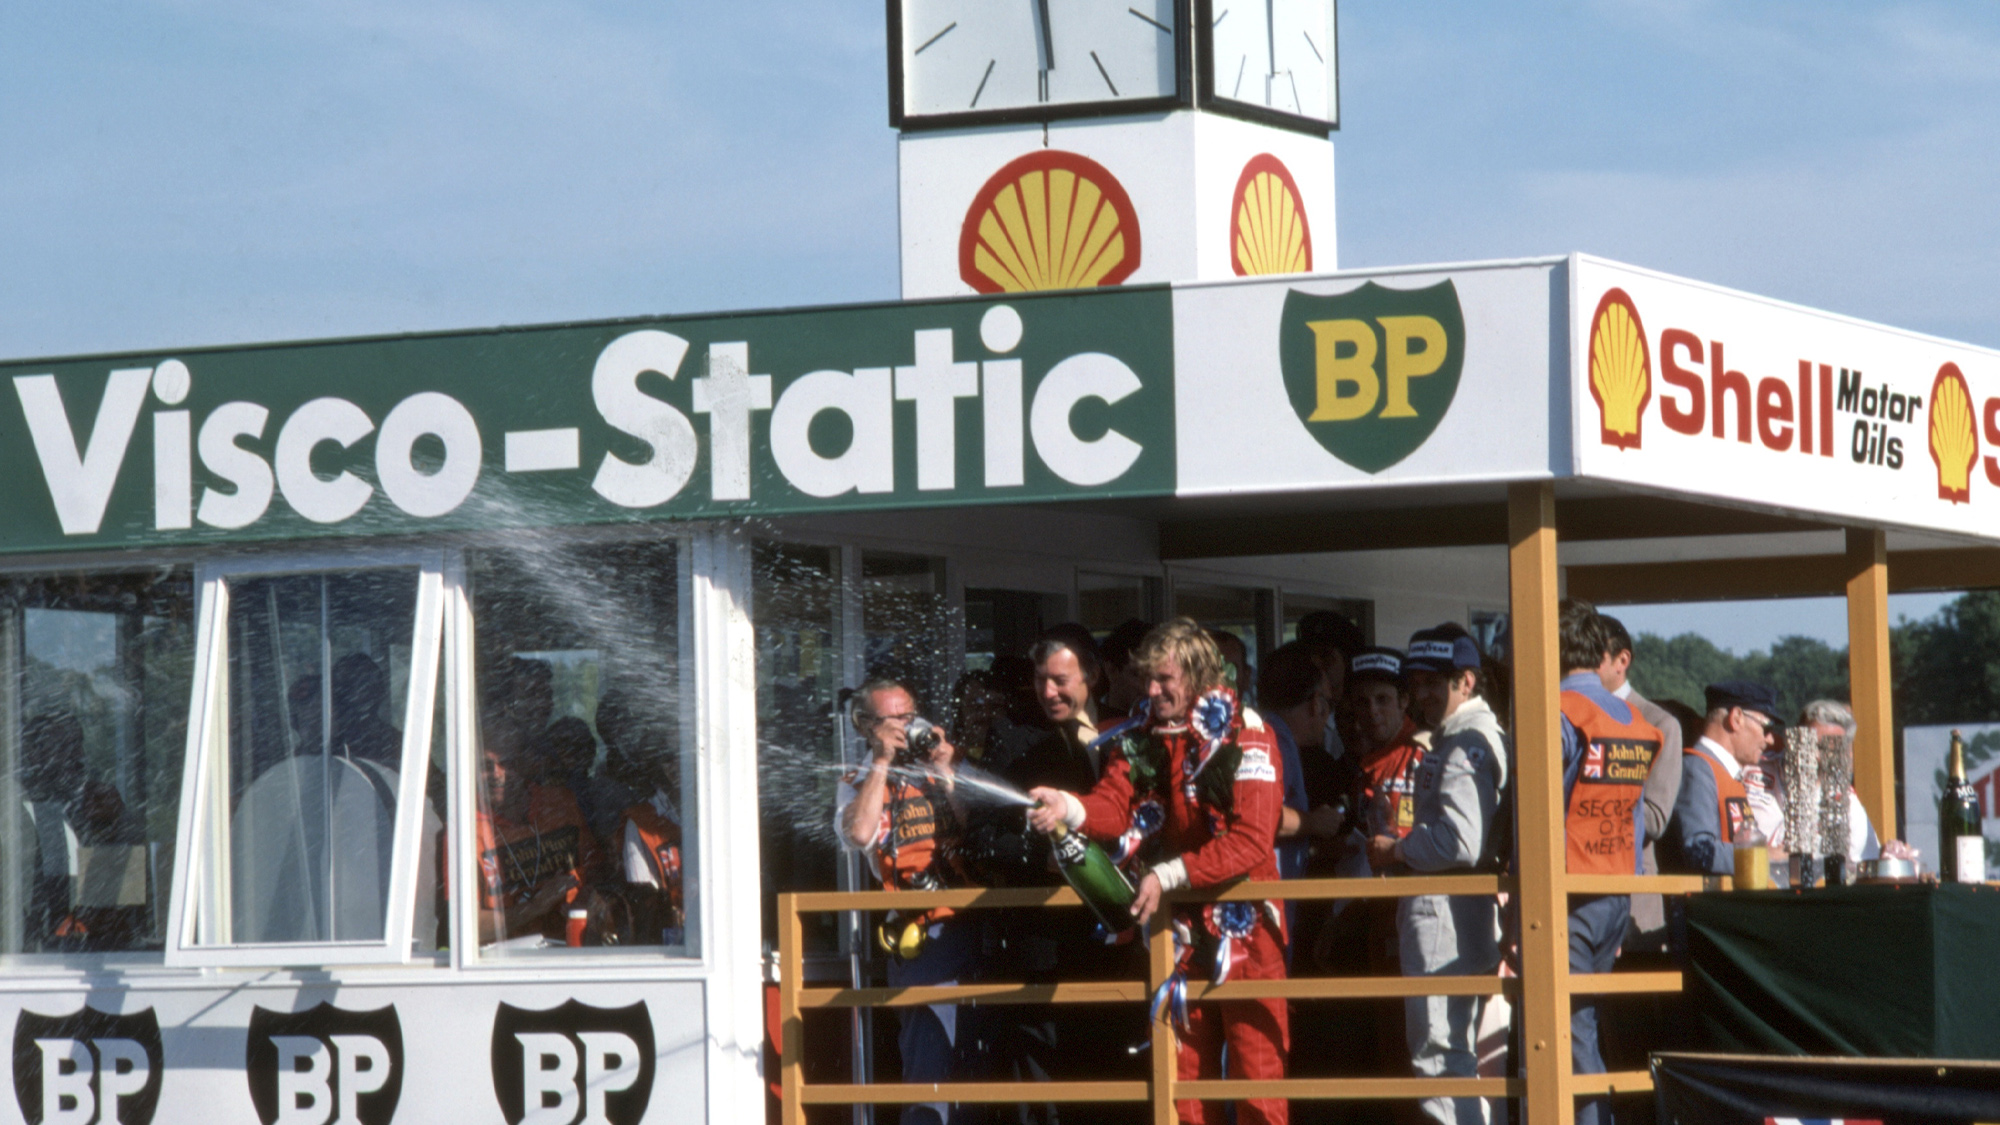 James Hunt sprays champagne on the podium after winning the 1976 British Grand Prix at Brands Hatch - provisionally